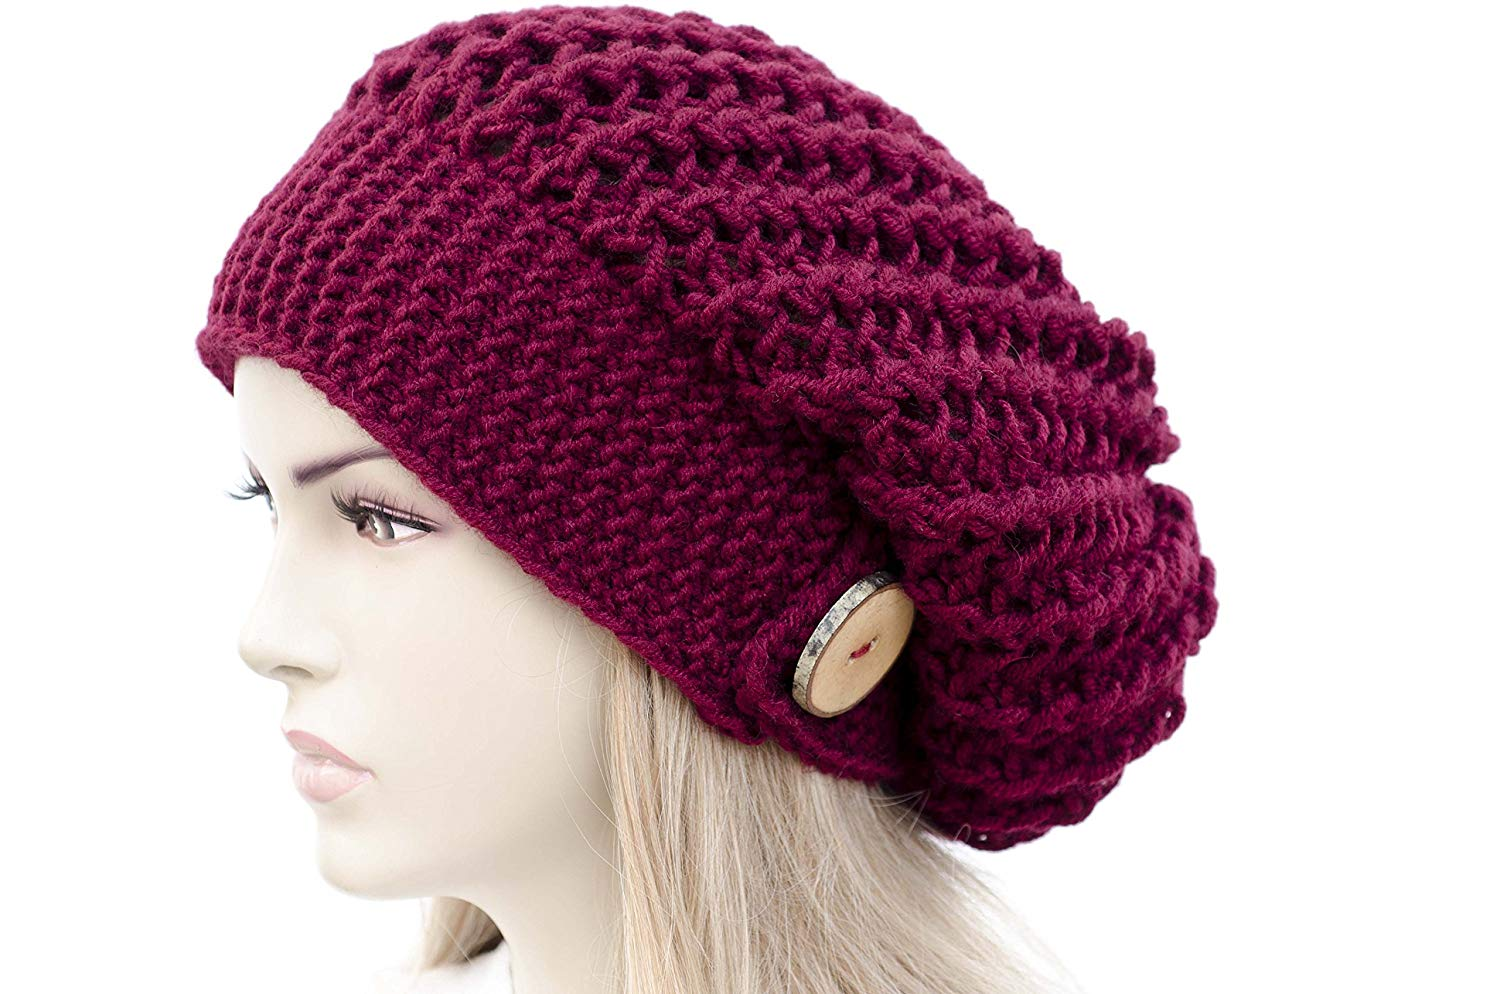 c0549f7cdfe Get Quotations · Slouchy Hat